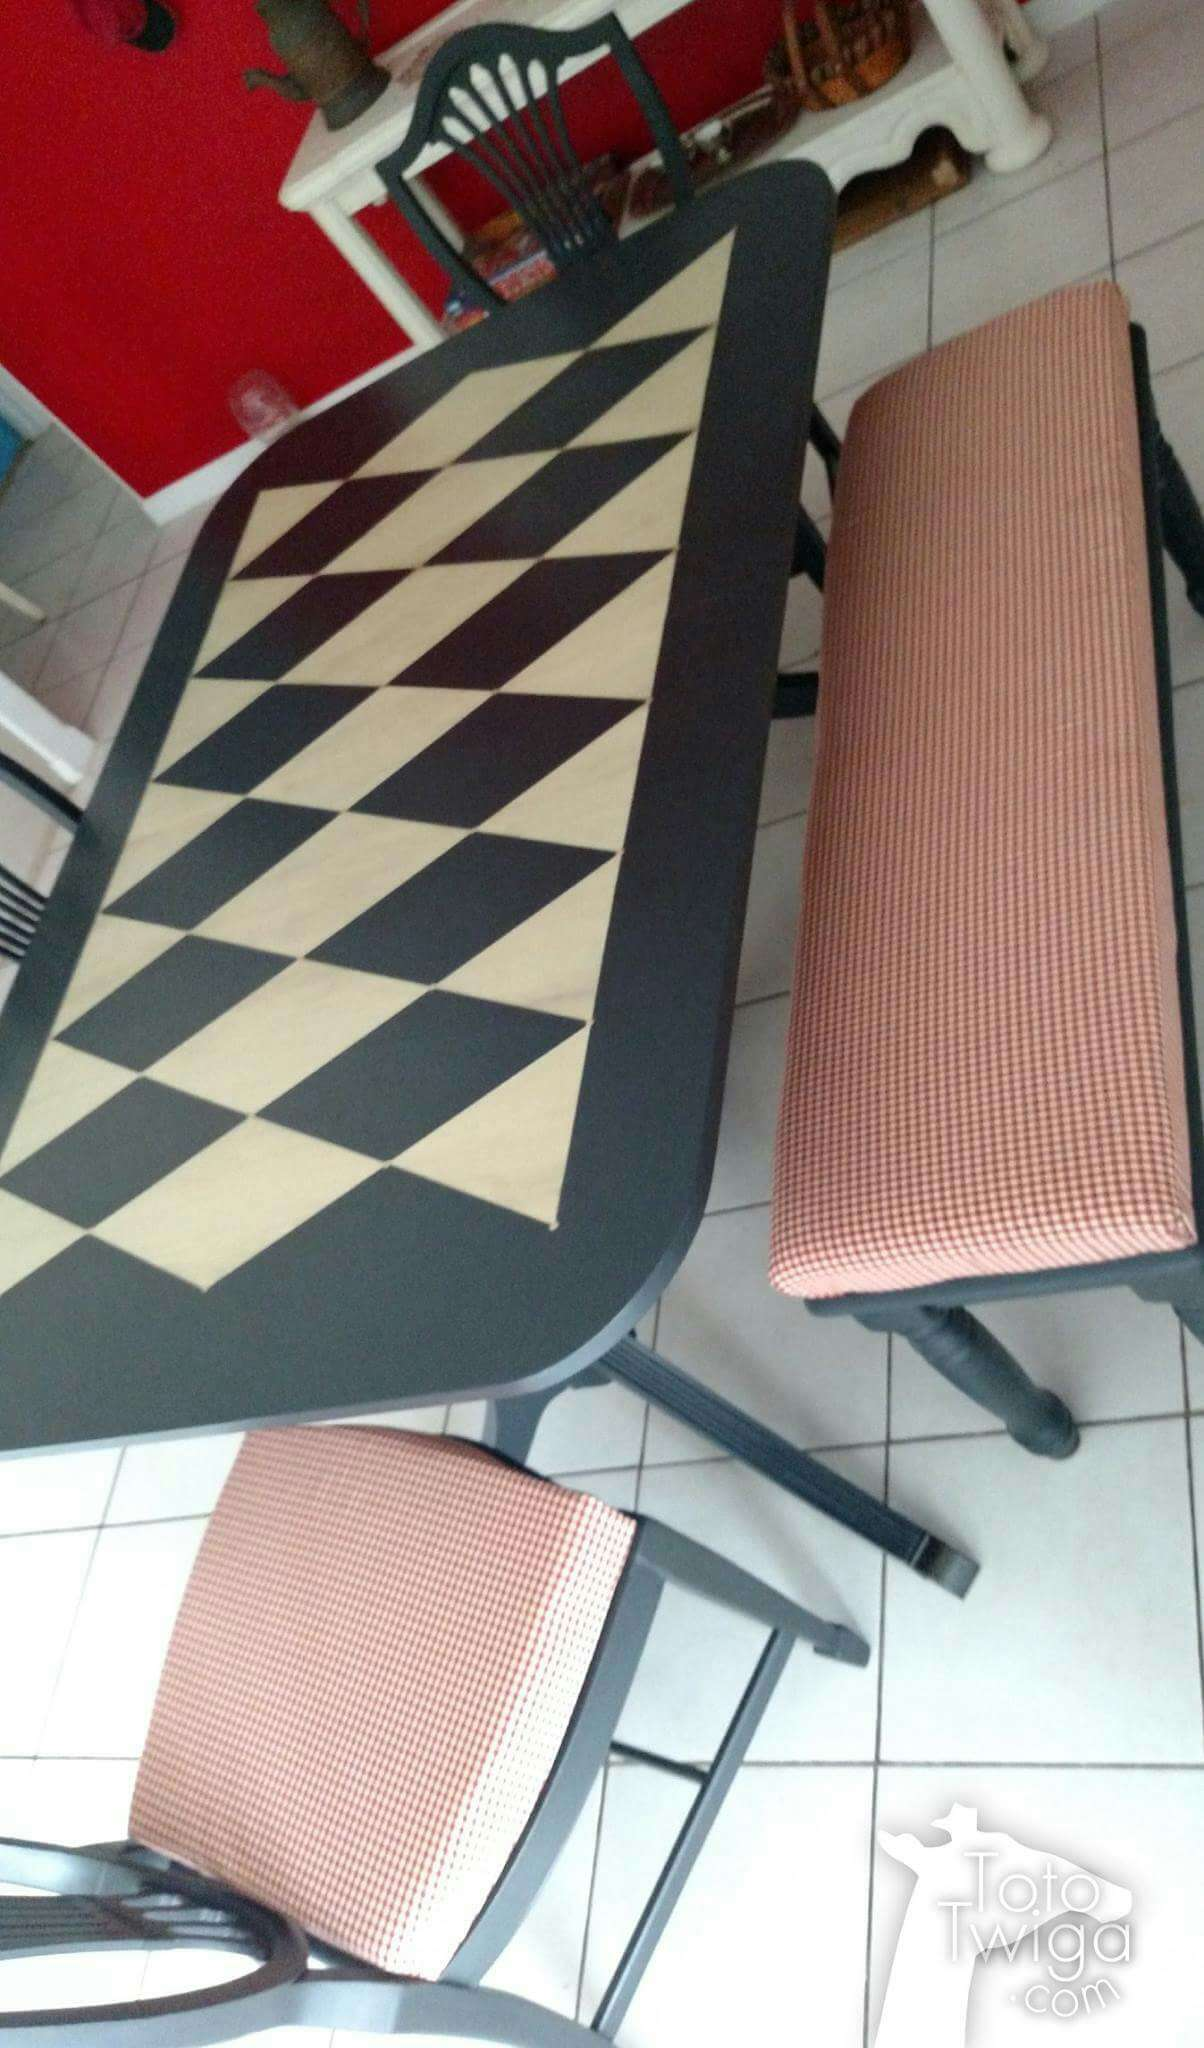 5 Piece Dining Set NEED GONE for sale in Apopka FL  : 1465348682 from www.5miles.com size 1204 x 2048 jpeg 193kB